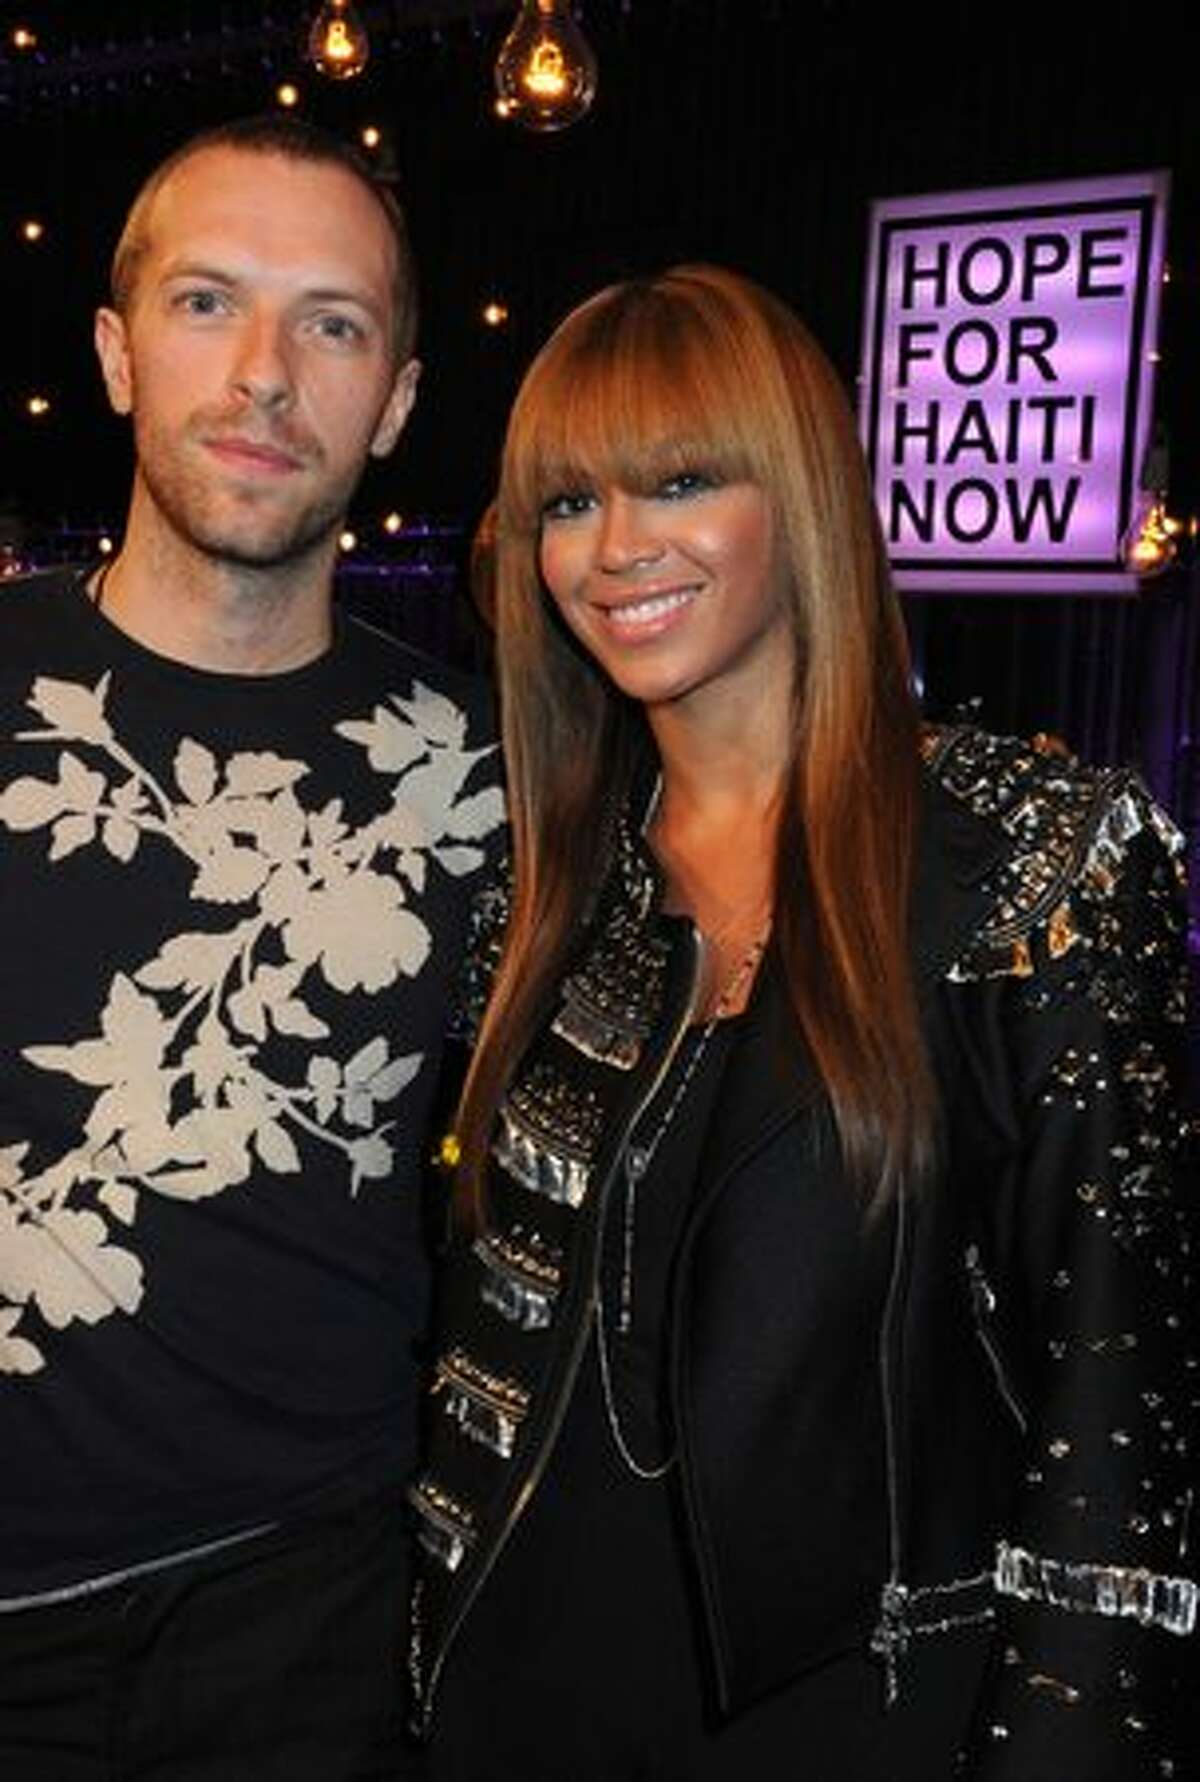 Chris Martin and Beyonce Knowles attend the Hope For Haiti Now concert in London.